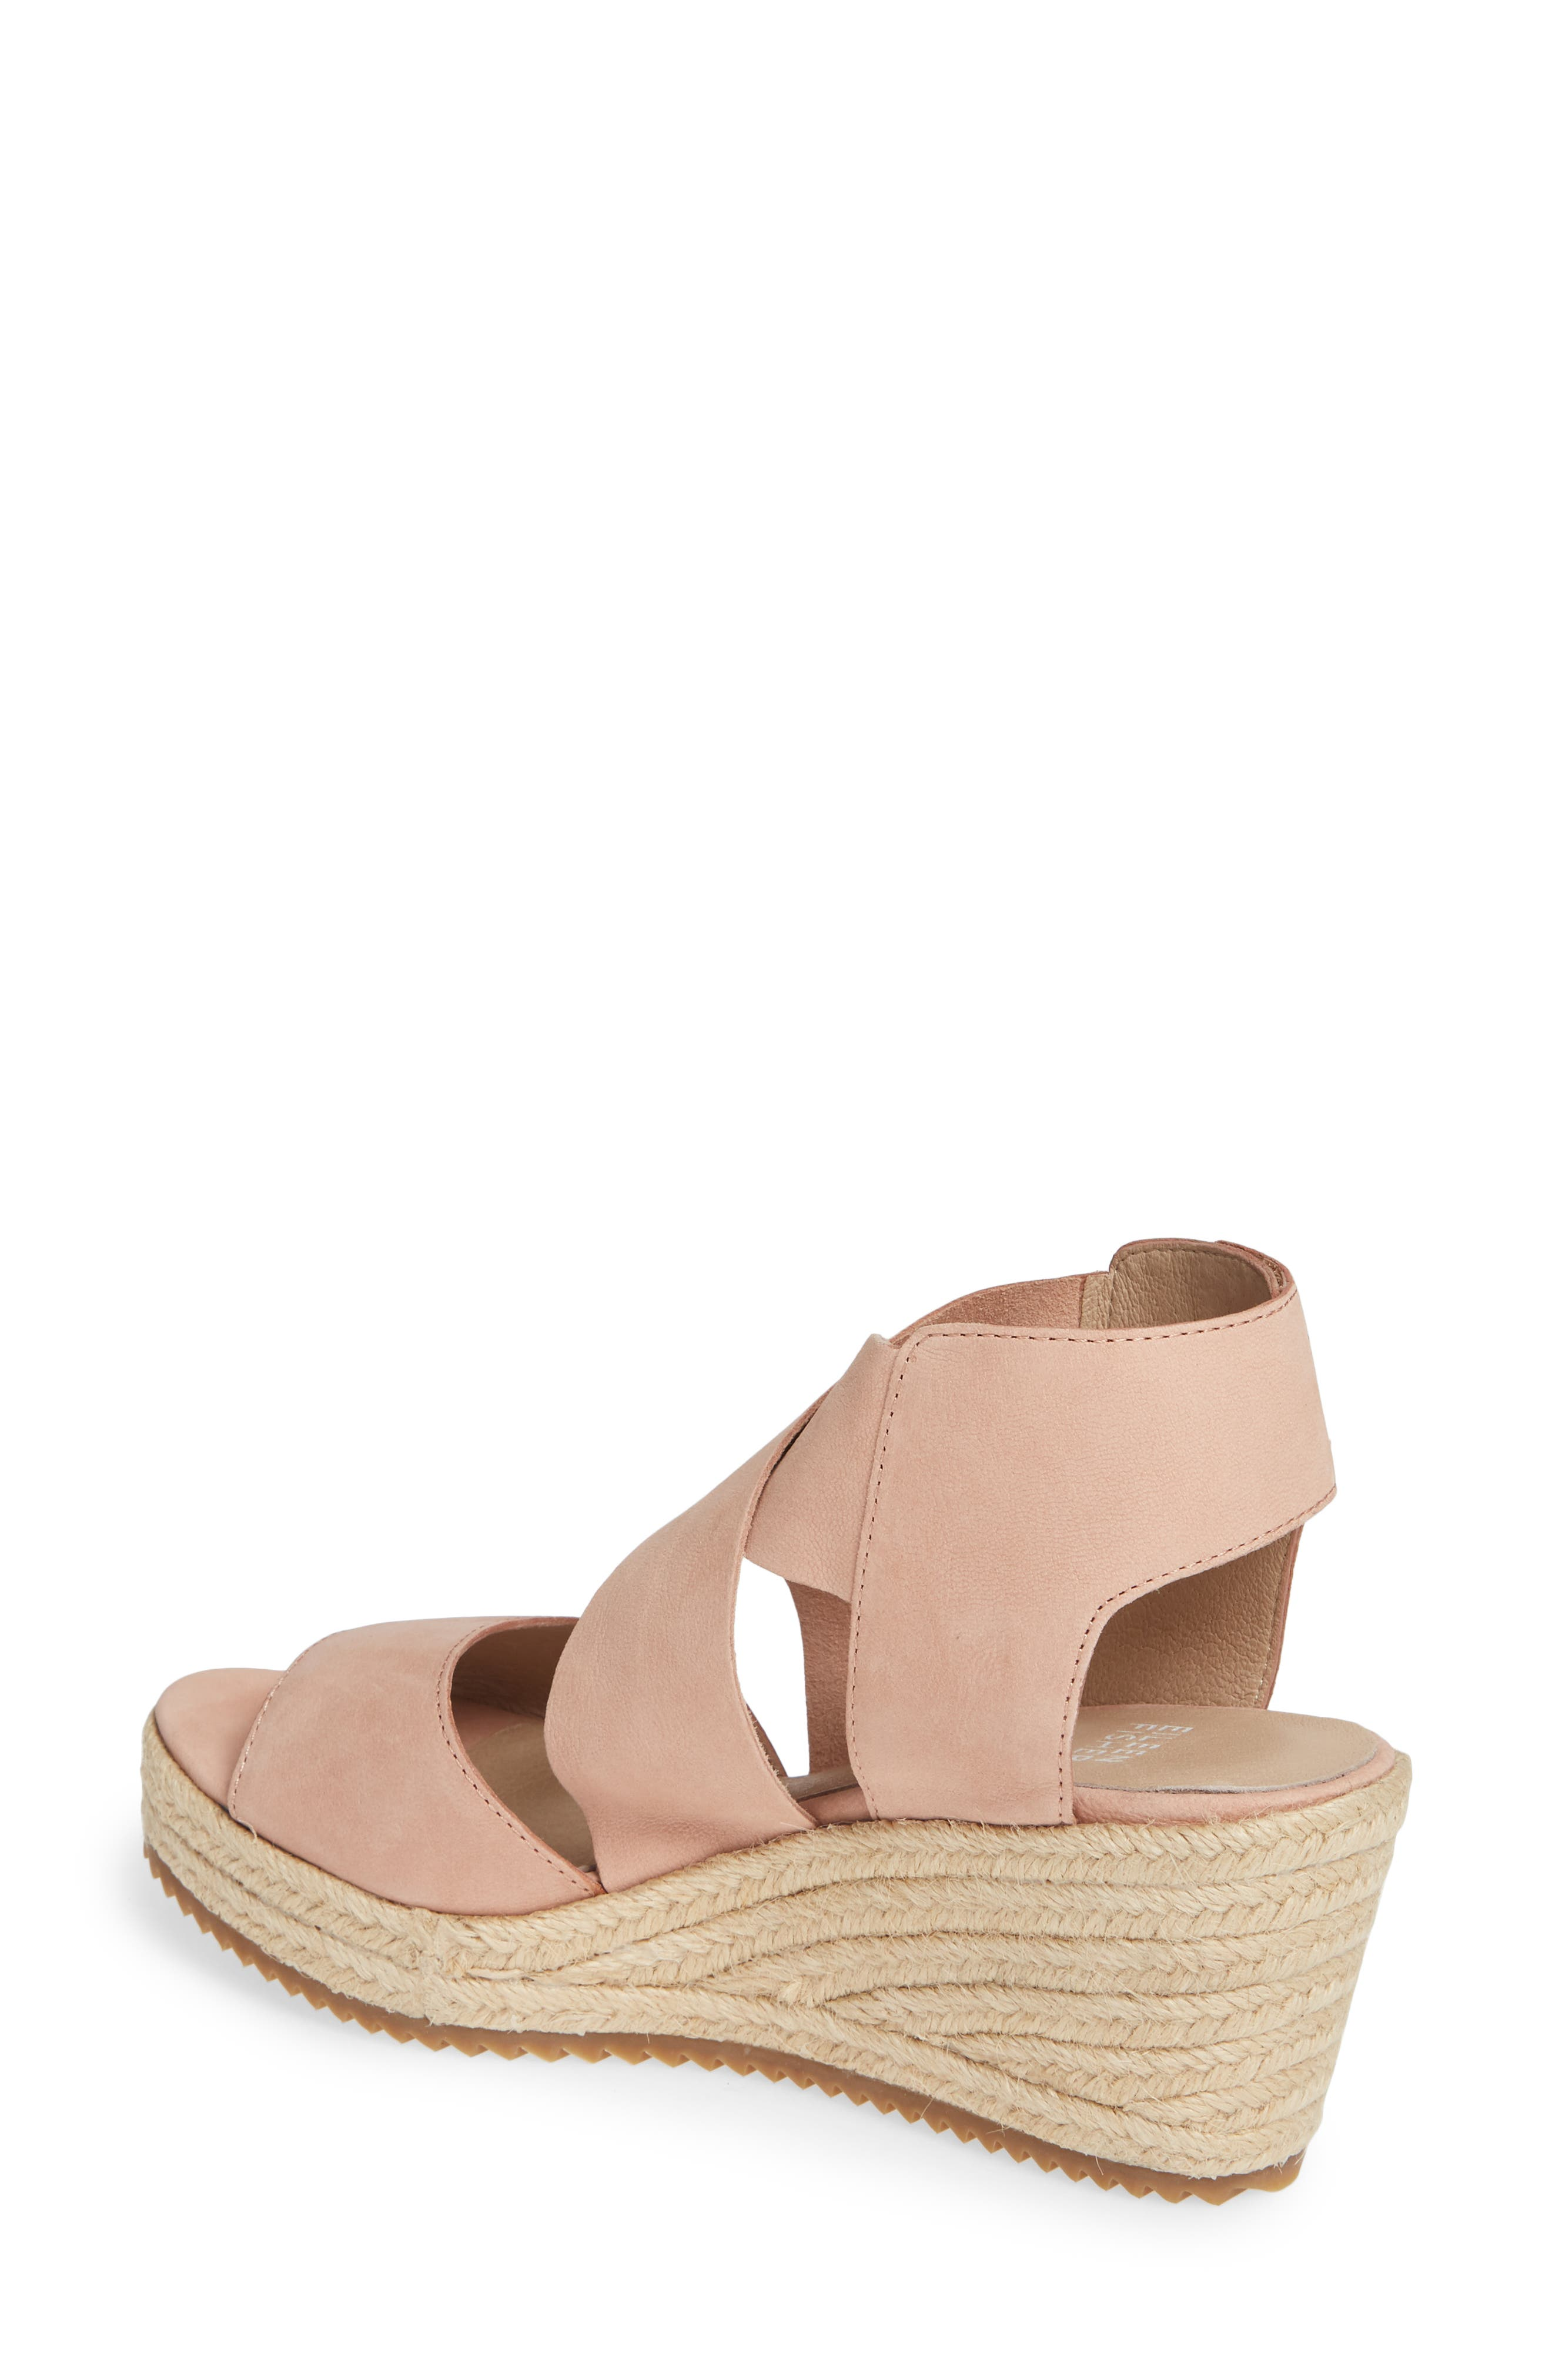 'Willow' Espadrille Wedge Sandal,                             Alternate thumbnail 2, color,                             TOFFEE CREAM NUBUCK